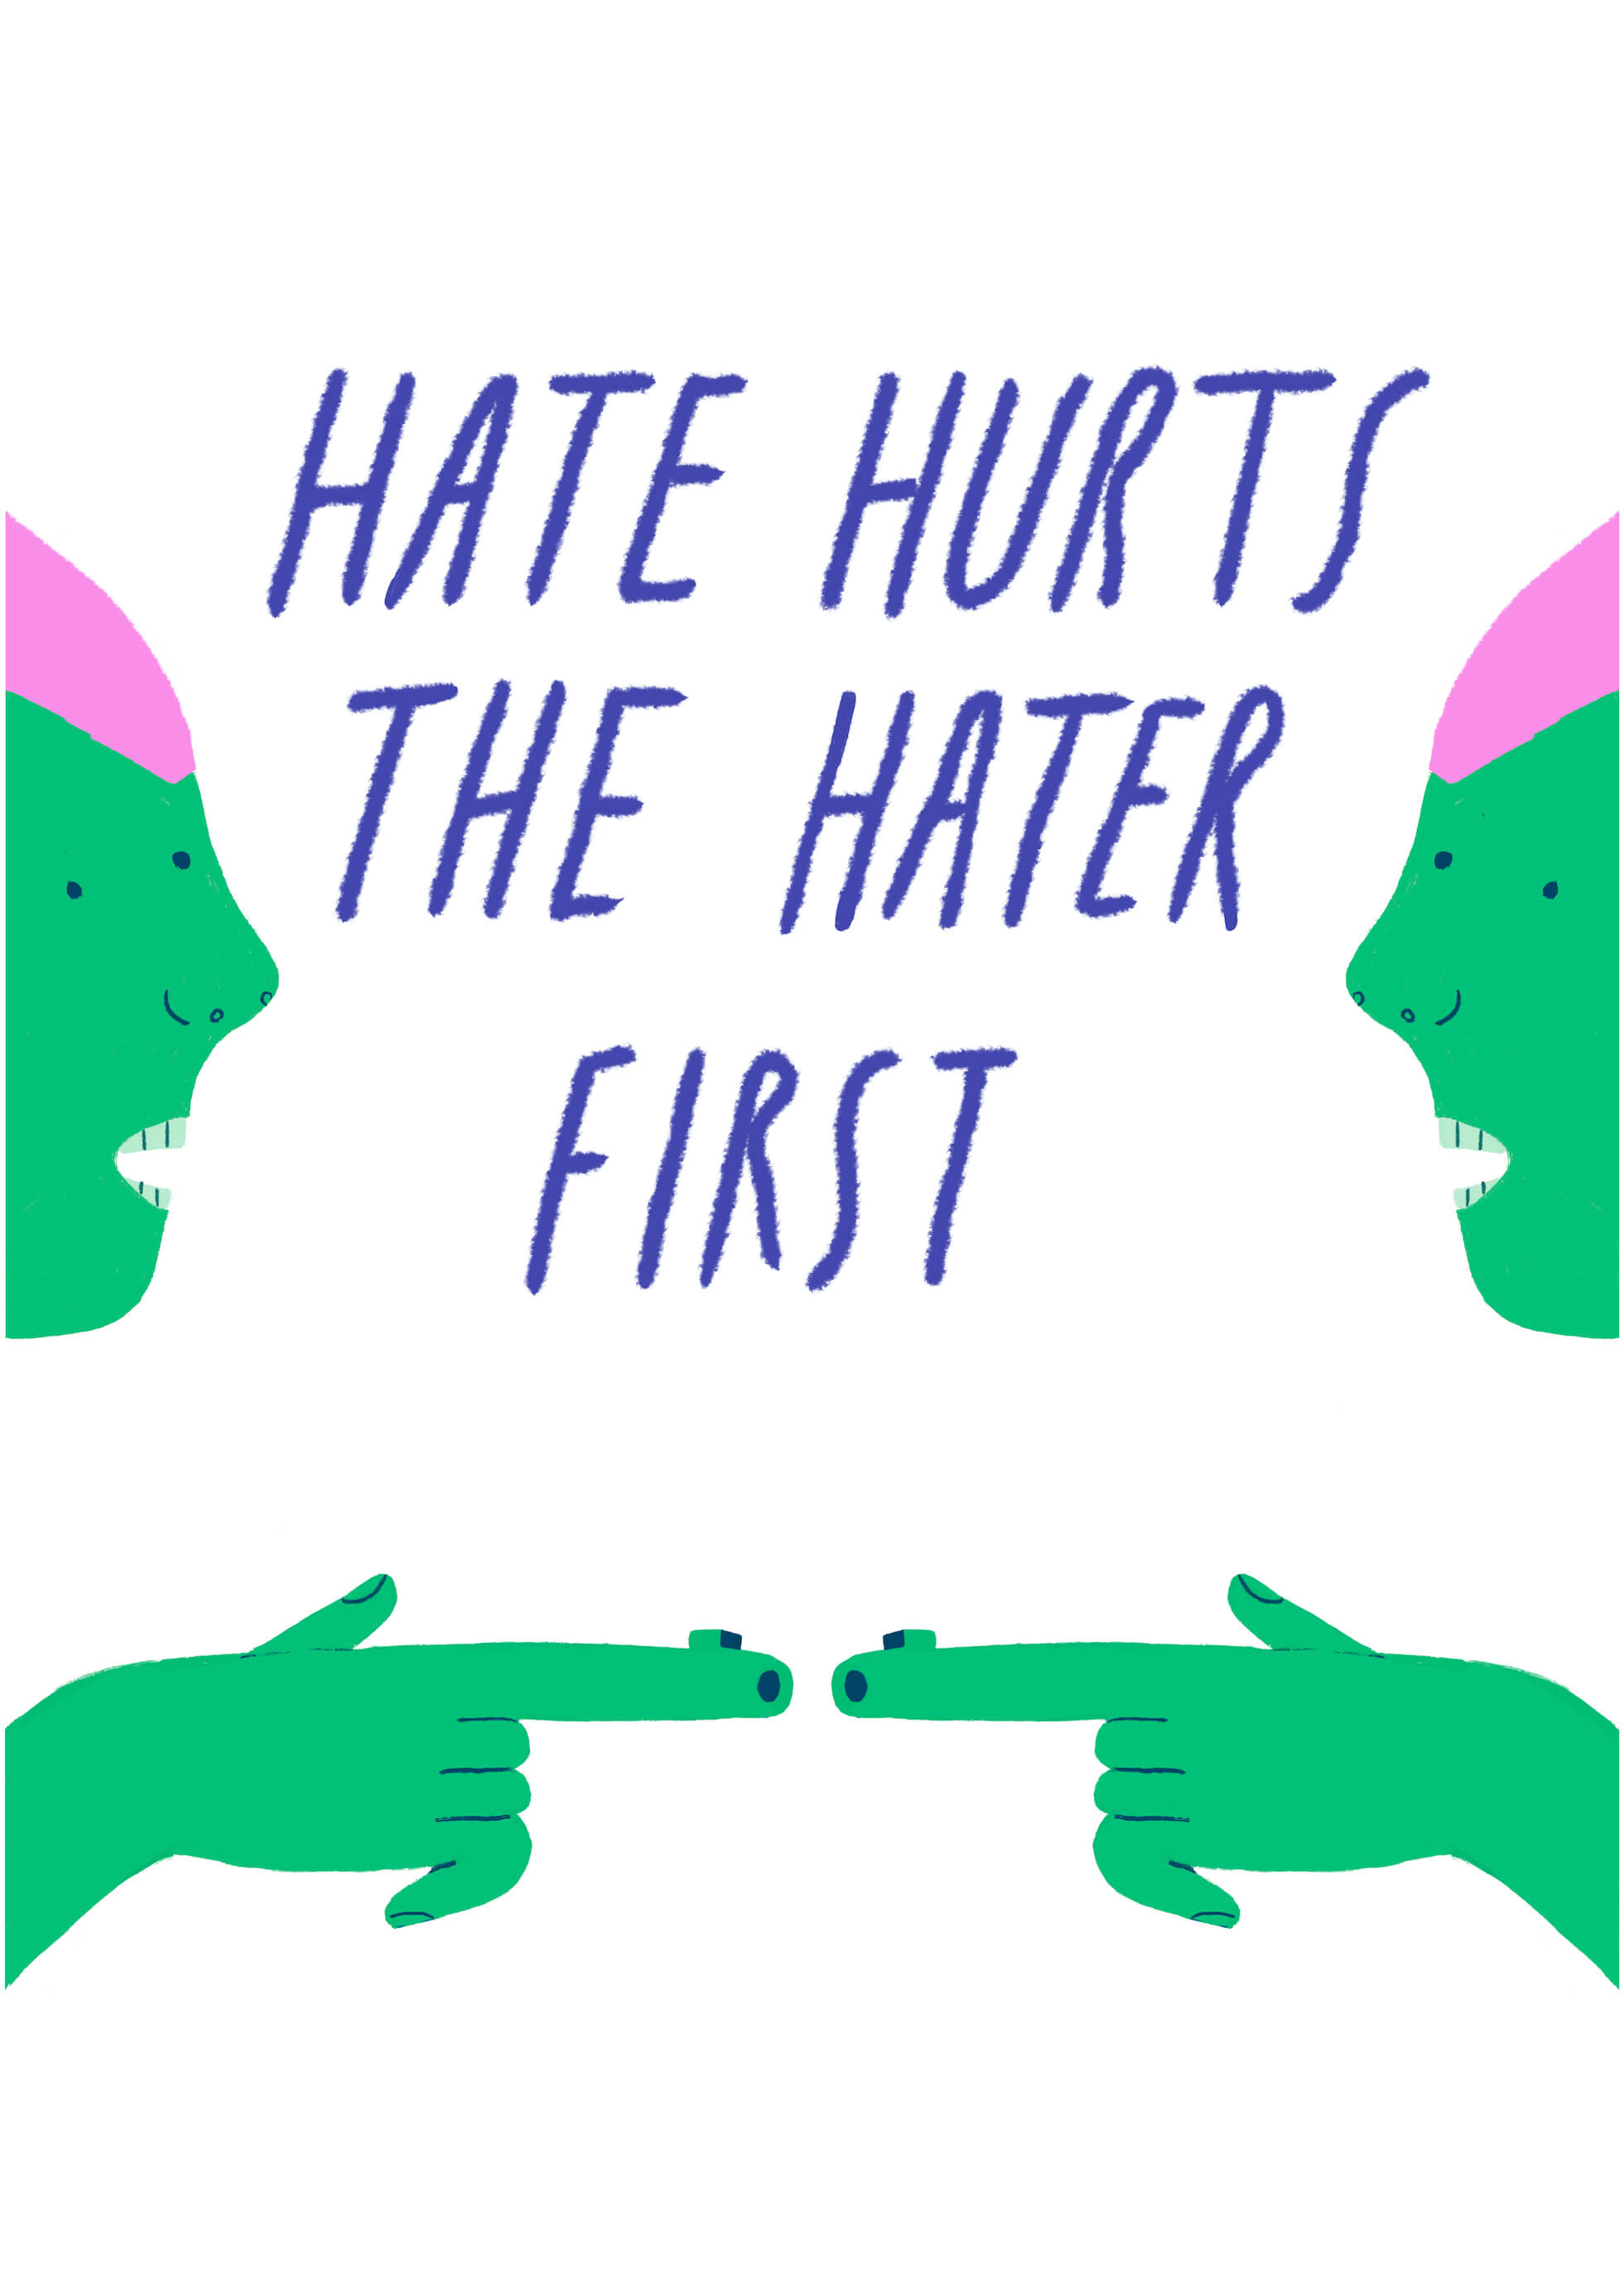 Hate Hurts The Hater First main image